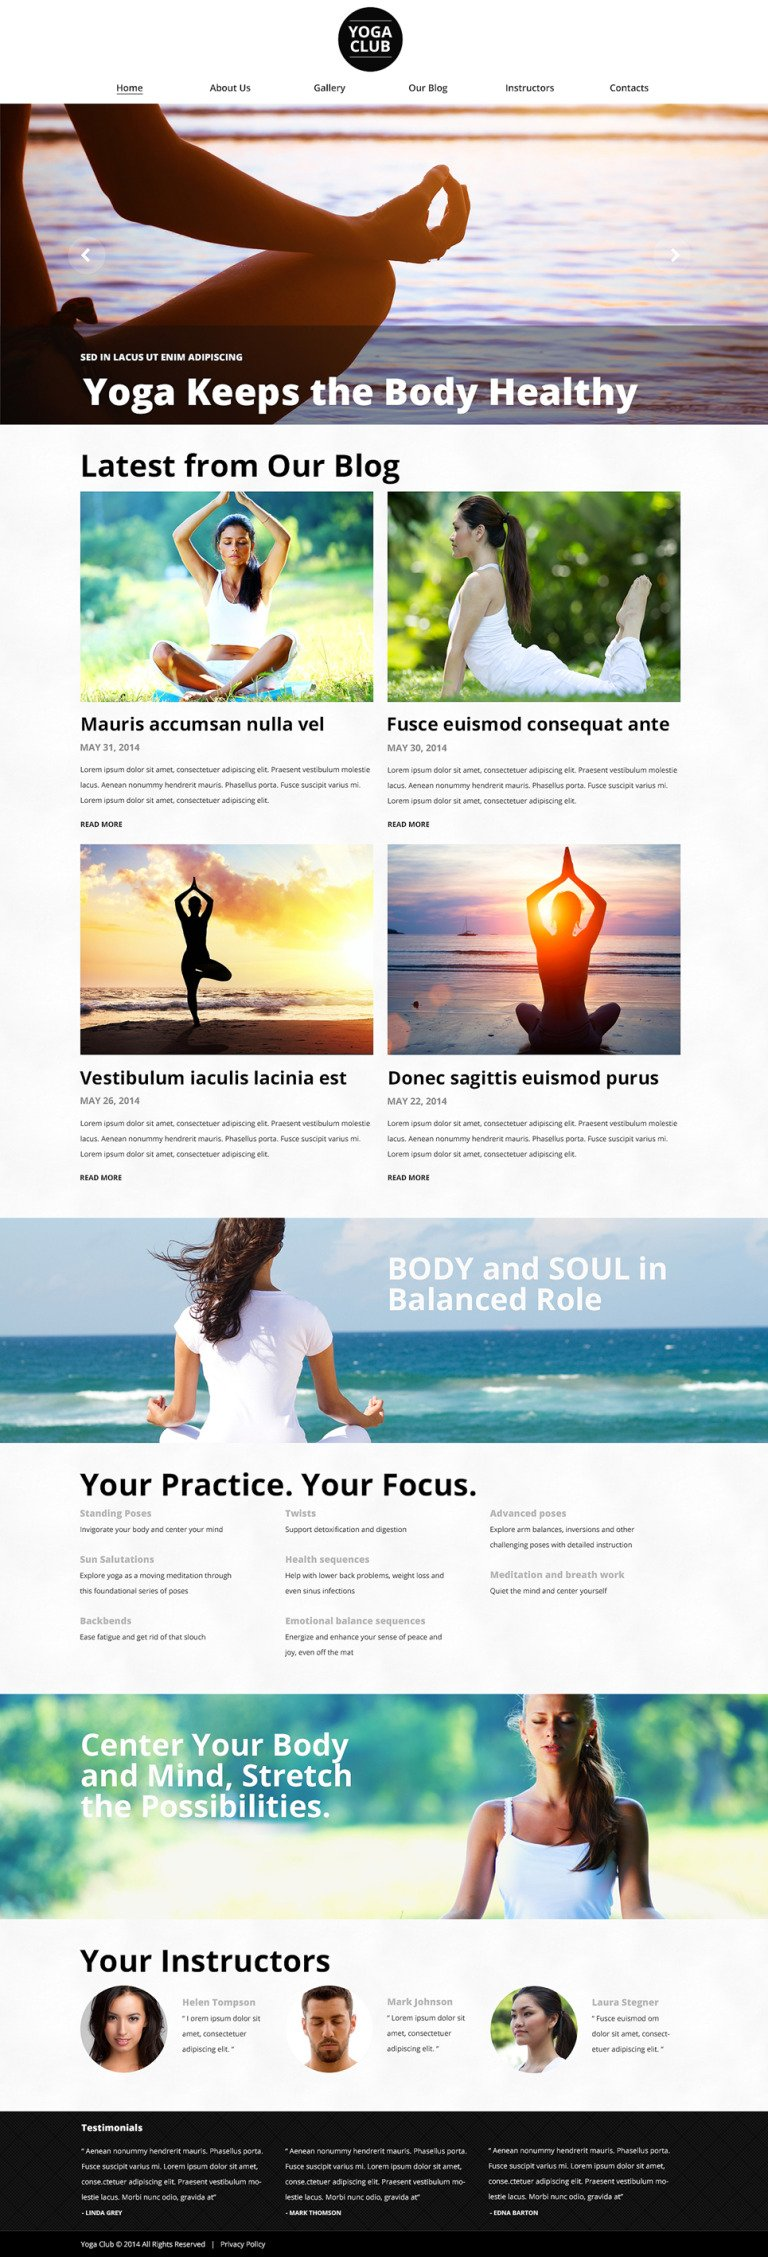 OpenAir Yoga Classes WordPress Theme New Screenshots BIG